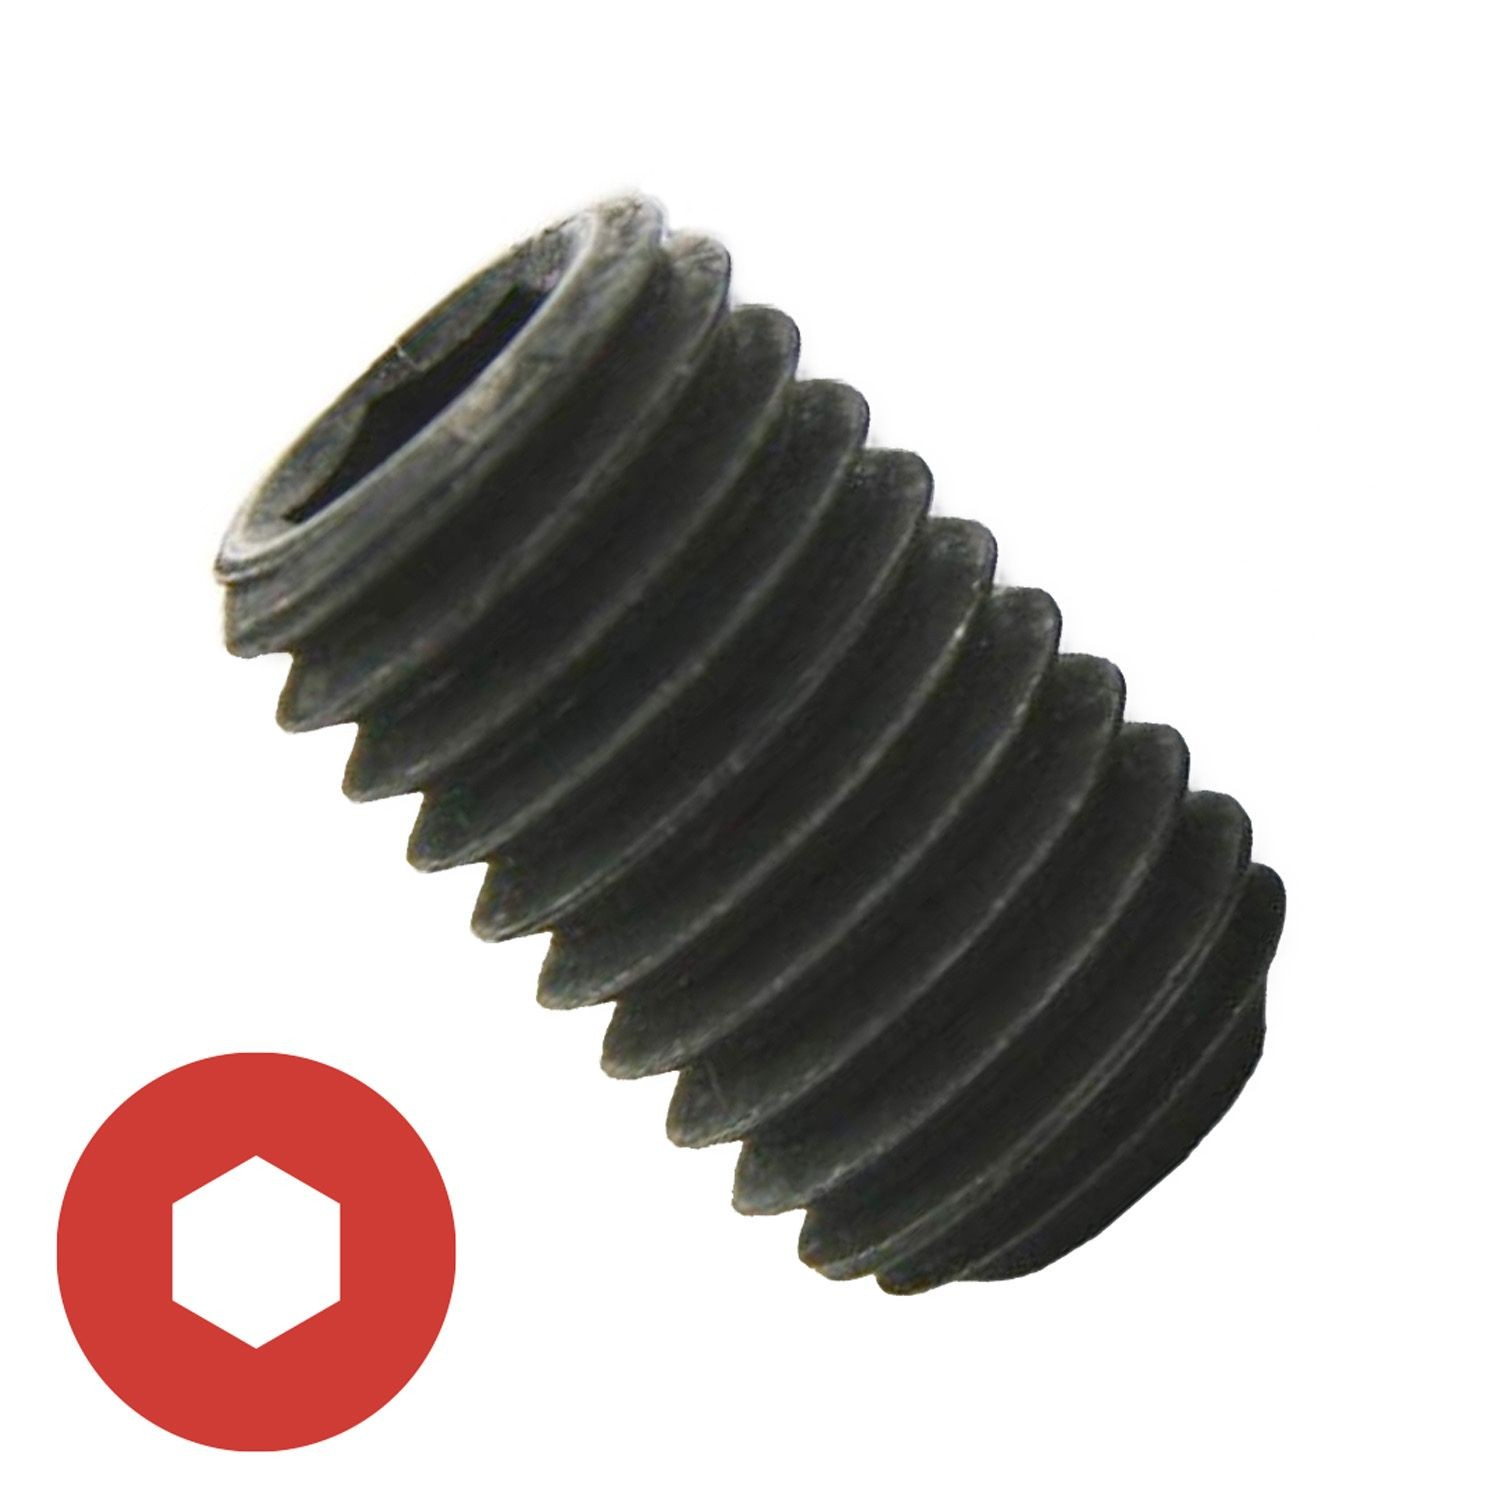 "#10-24 x 1-1/4"" Cup Point Socket Set Screw"